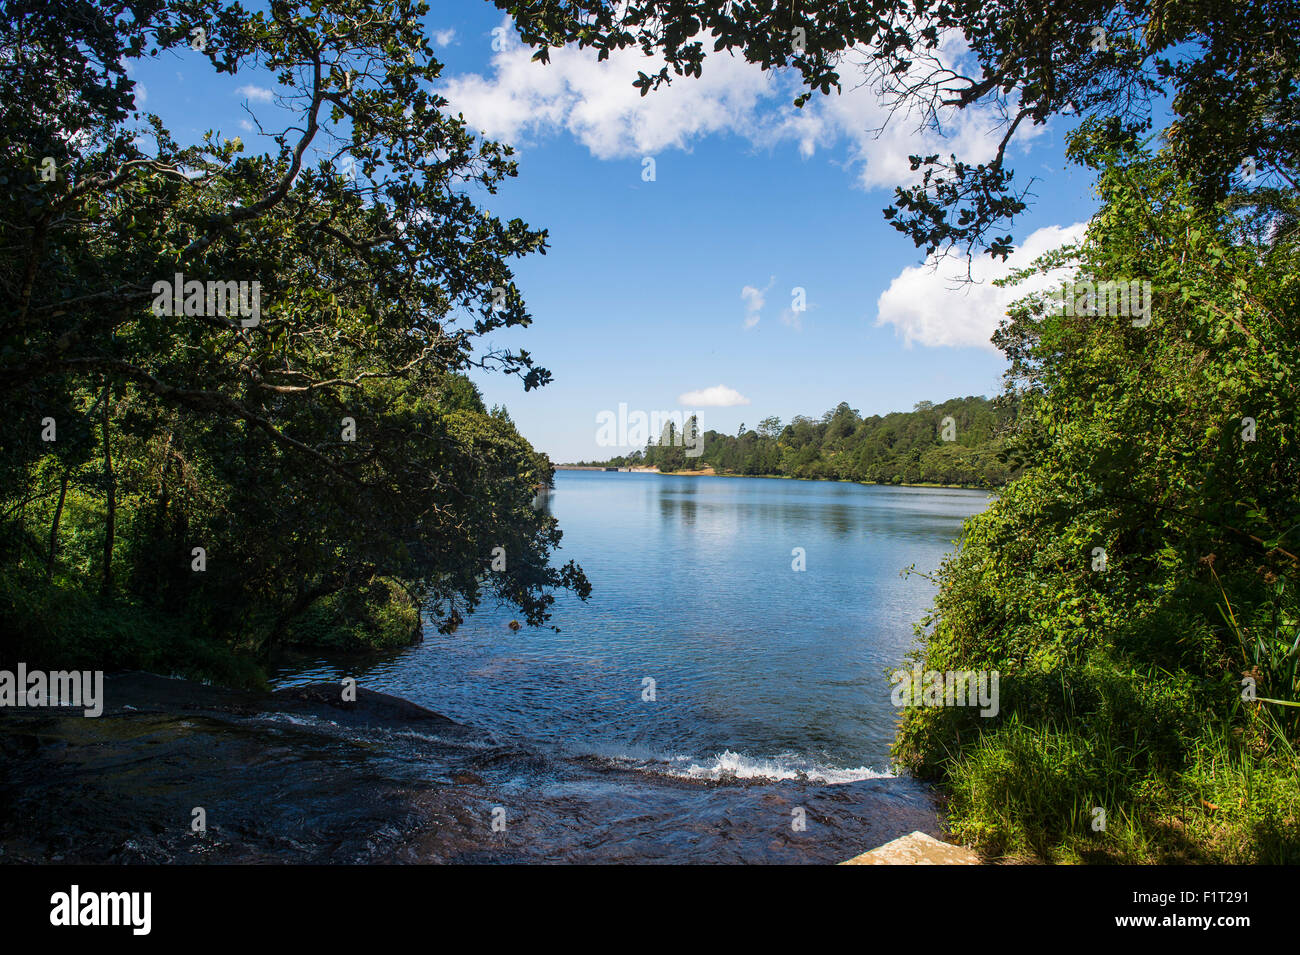 Mandala falls flowing in the artificial lake on the Mulunguzi Dam, Zomba Plateau, Malawi, Africa - Stock Image